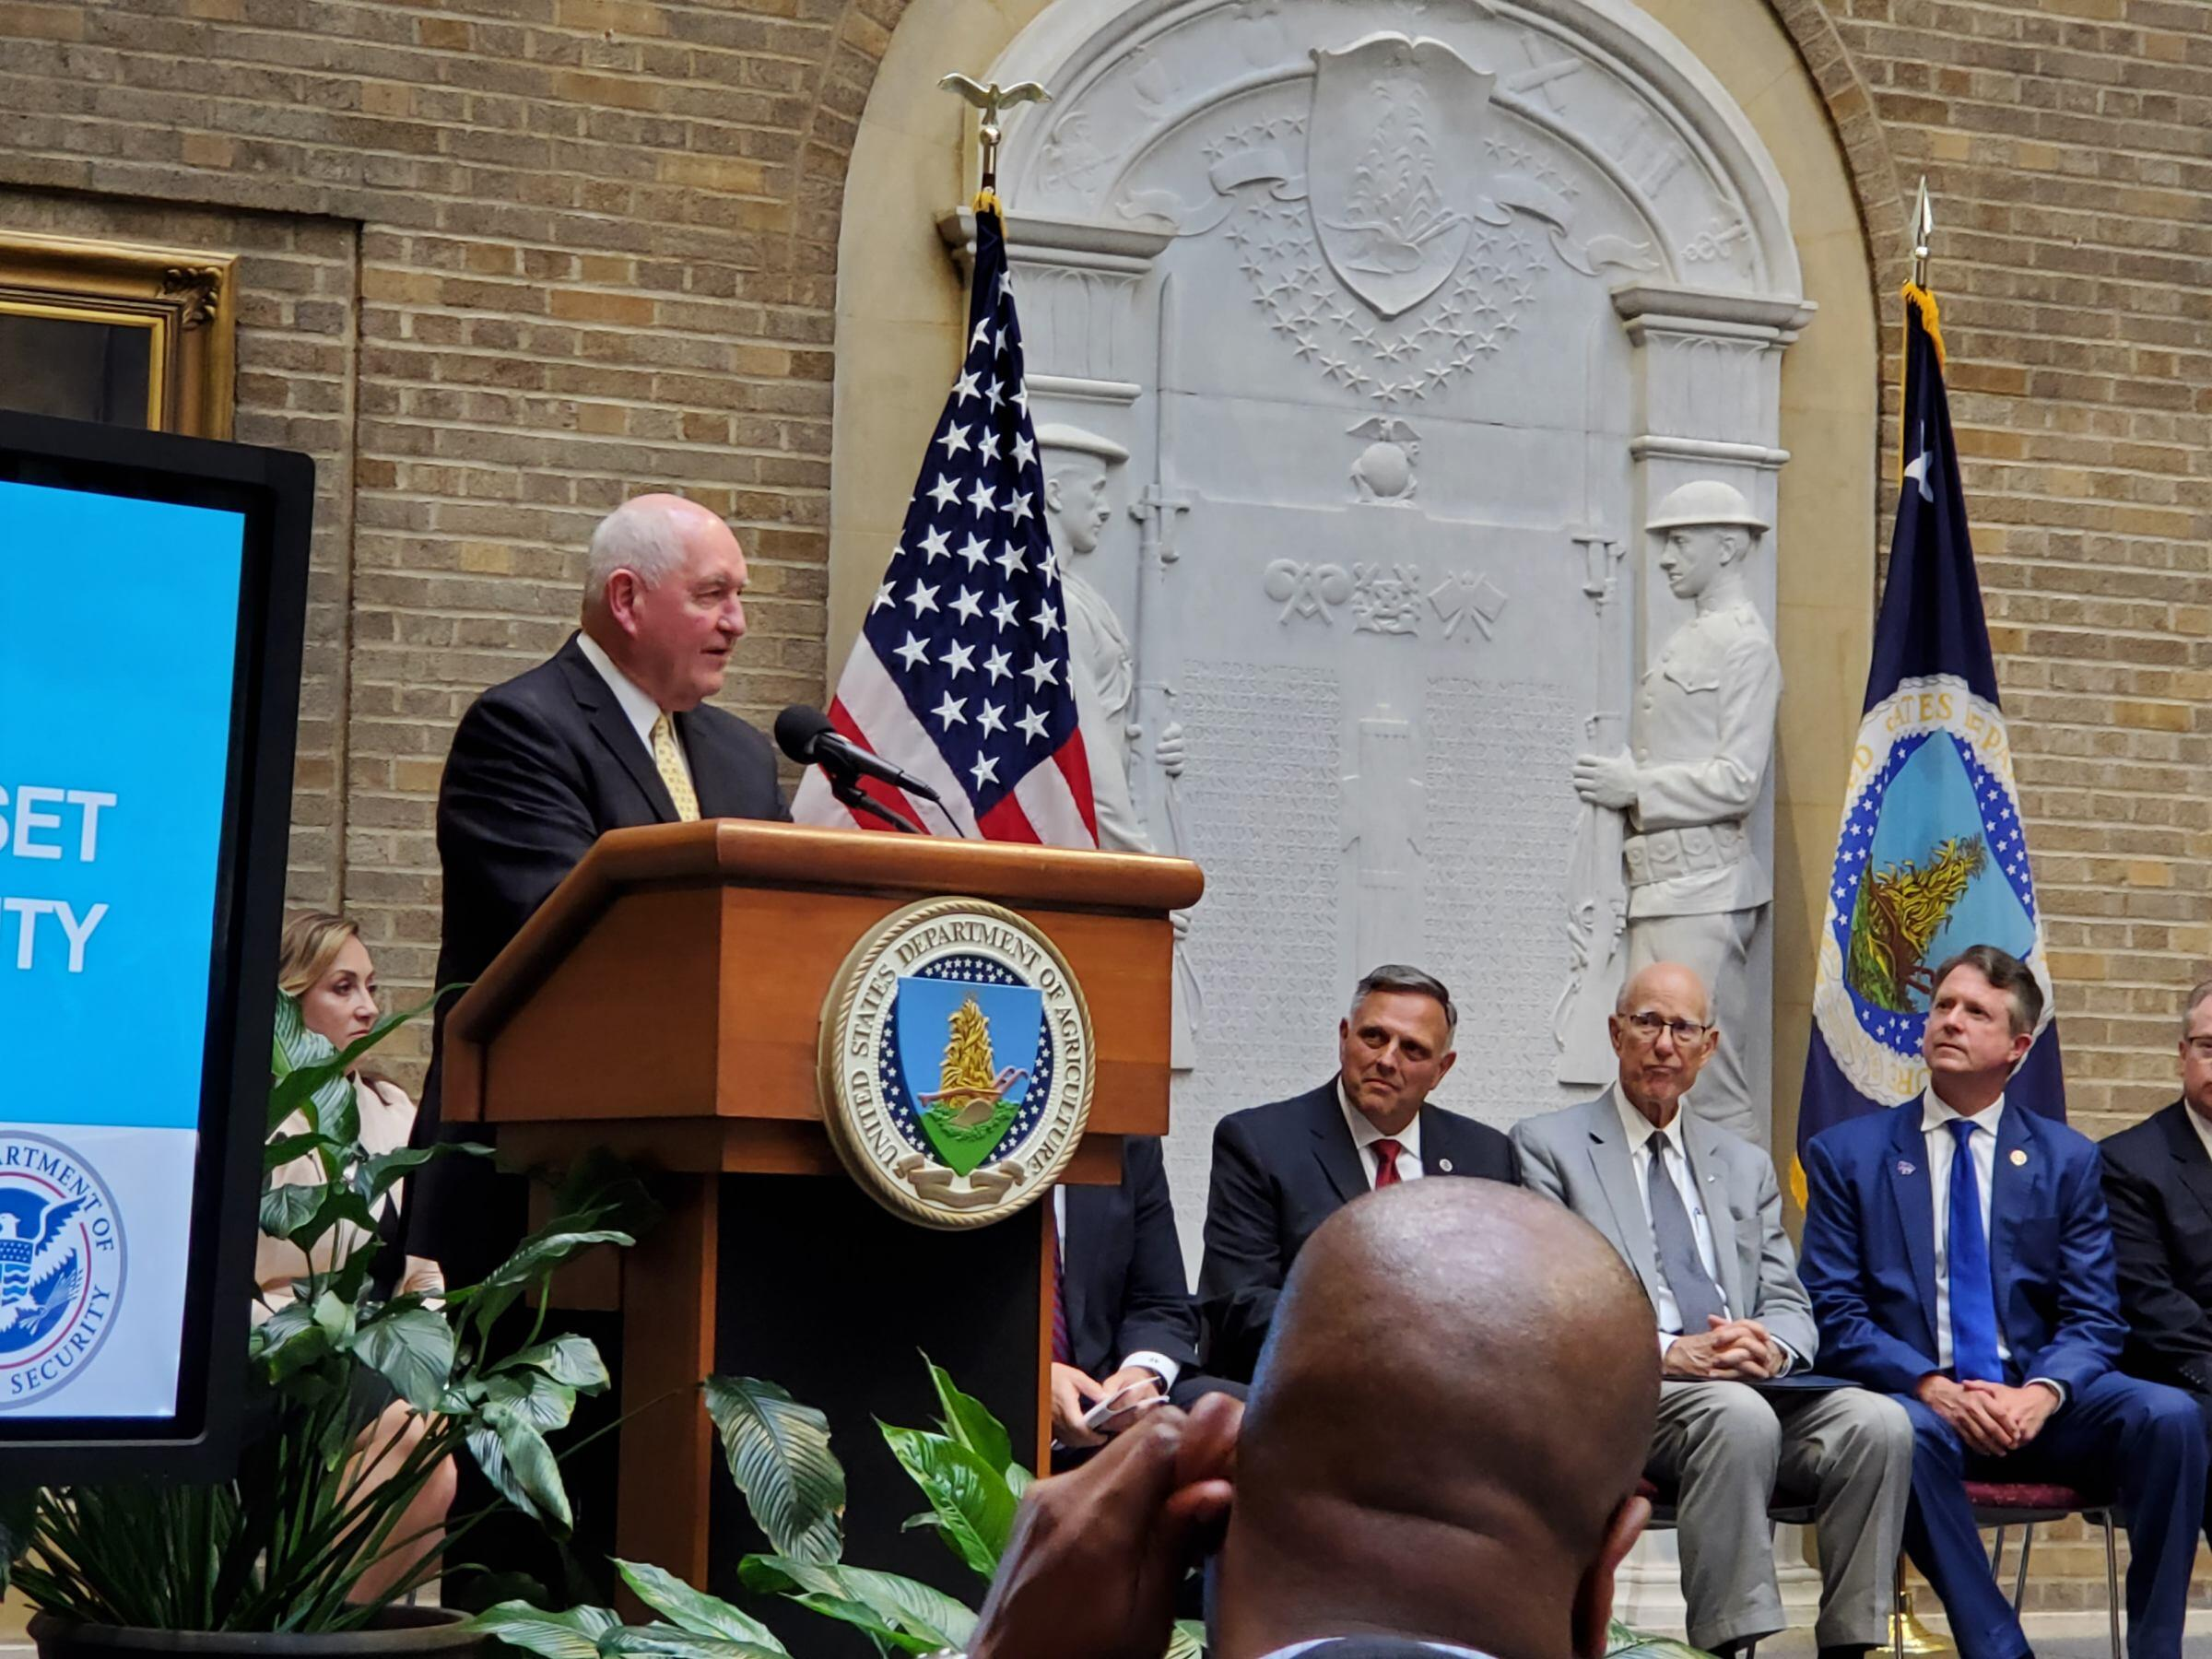 USDA Secretary Sonny Perdue speaks at the event.